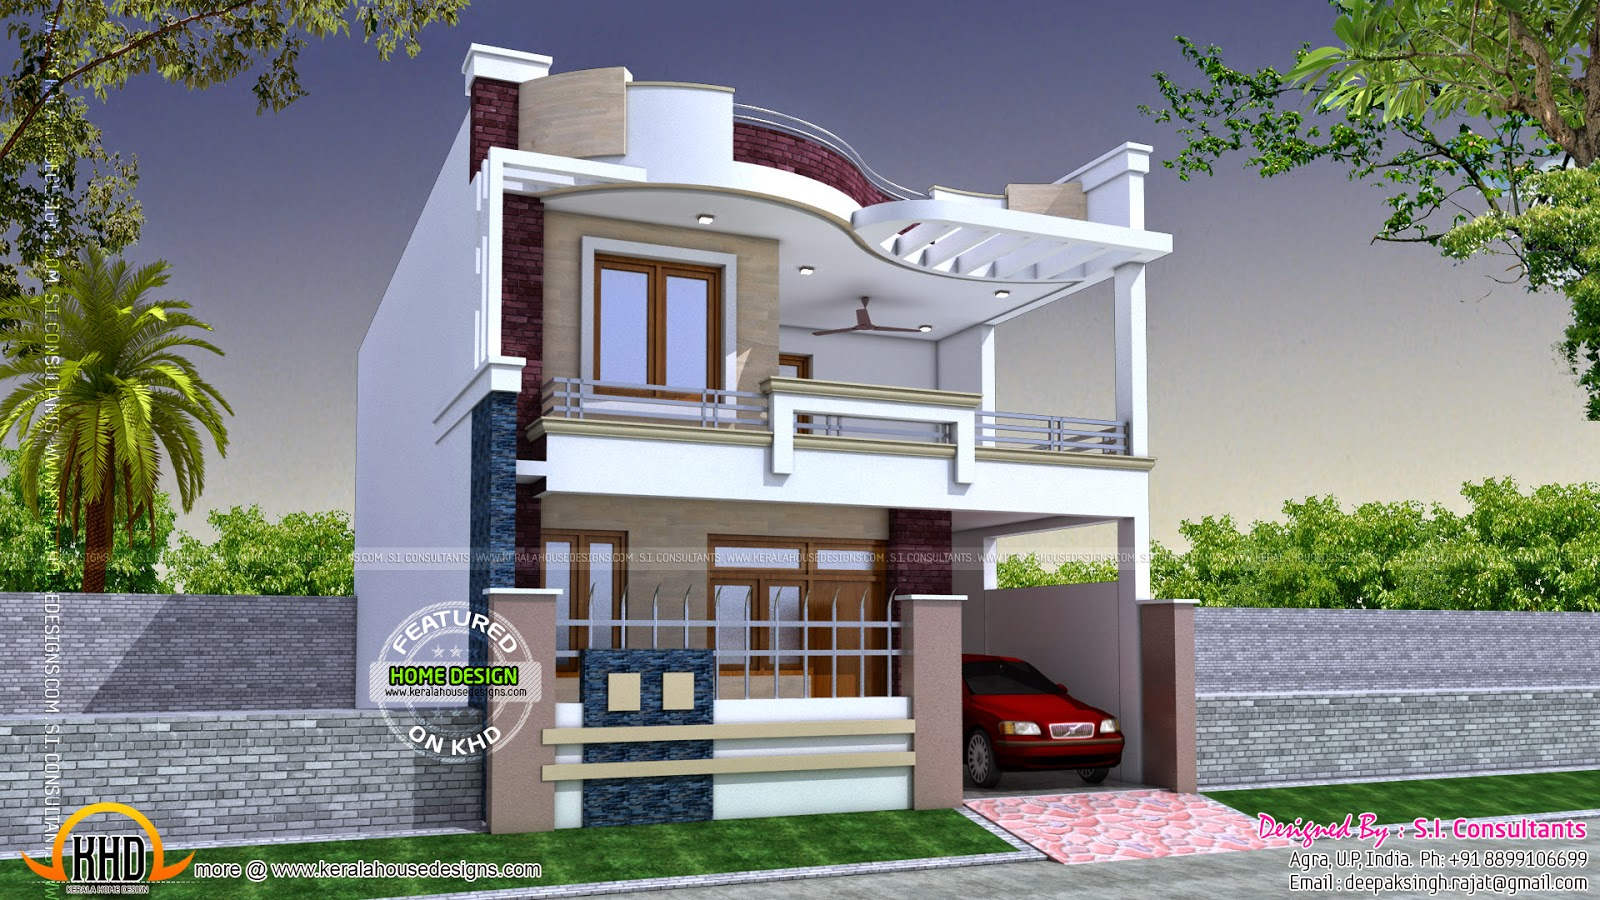 Modern indian home design kerala home design and floor plans for Remodel house plans